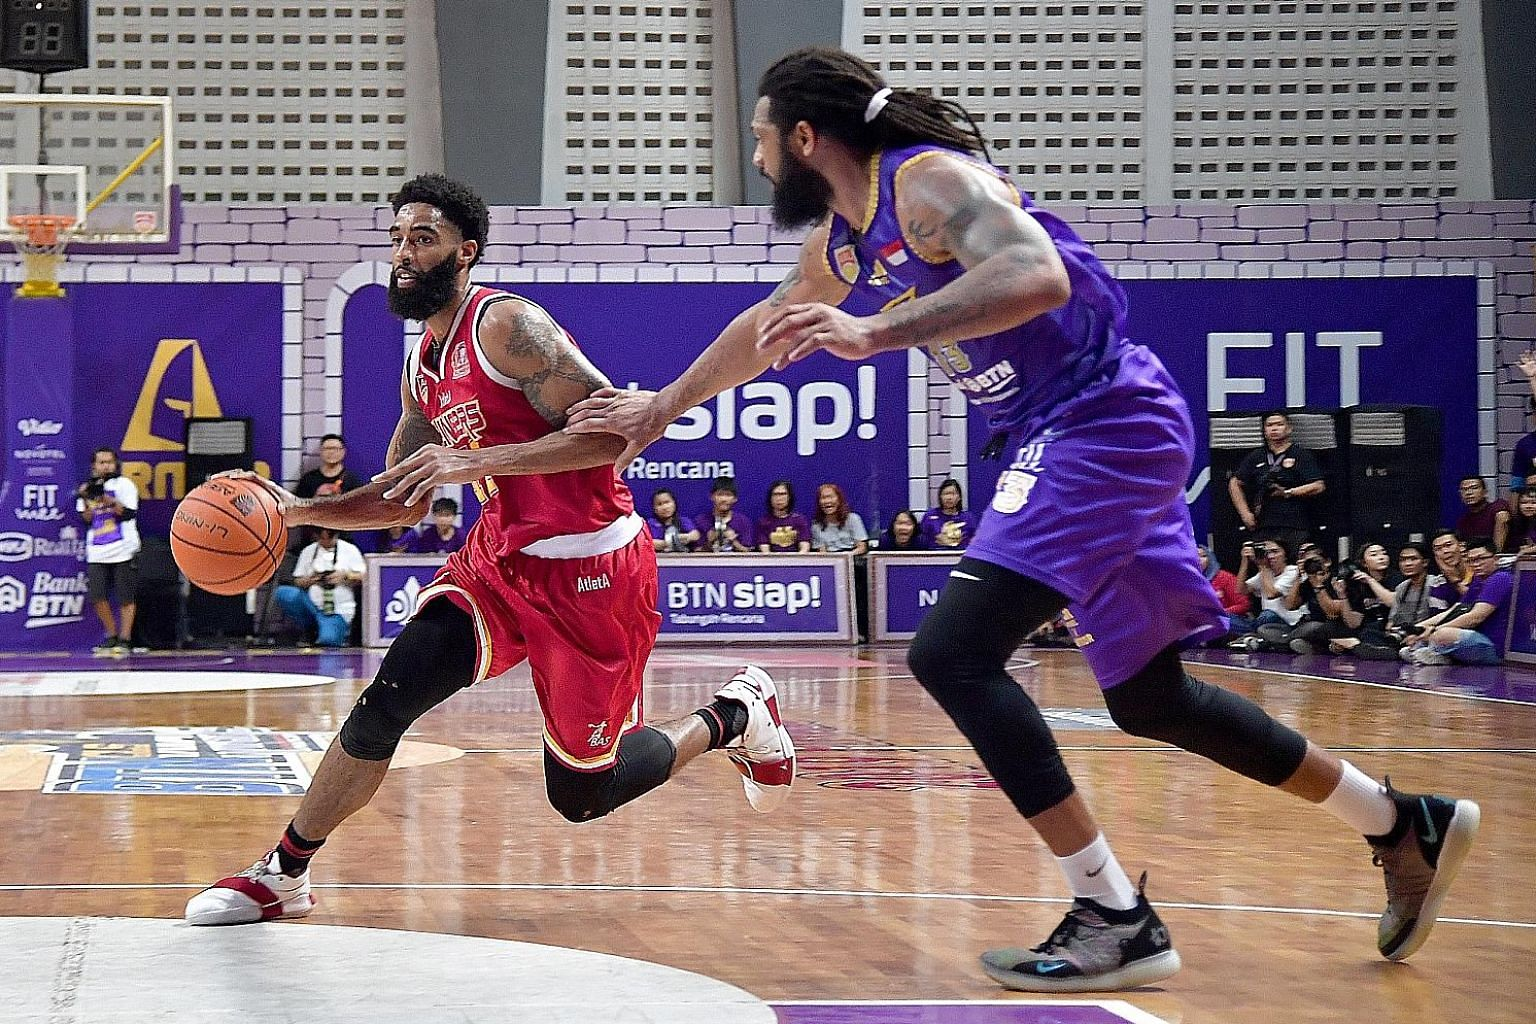 Singapore Slingers' Jerran Young being guarded by CLS Knights Indonesia's Darryl Watkins in Game 3 of the Asean Basketball League Finals in Surabaya on Wednesday. He has overcome a hamstring injury in their Game 1 loss to help the team come back with